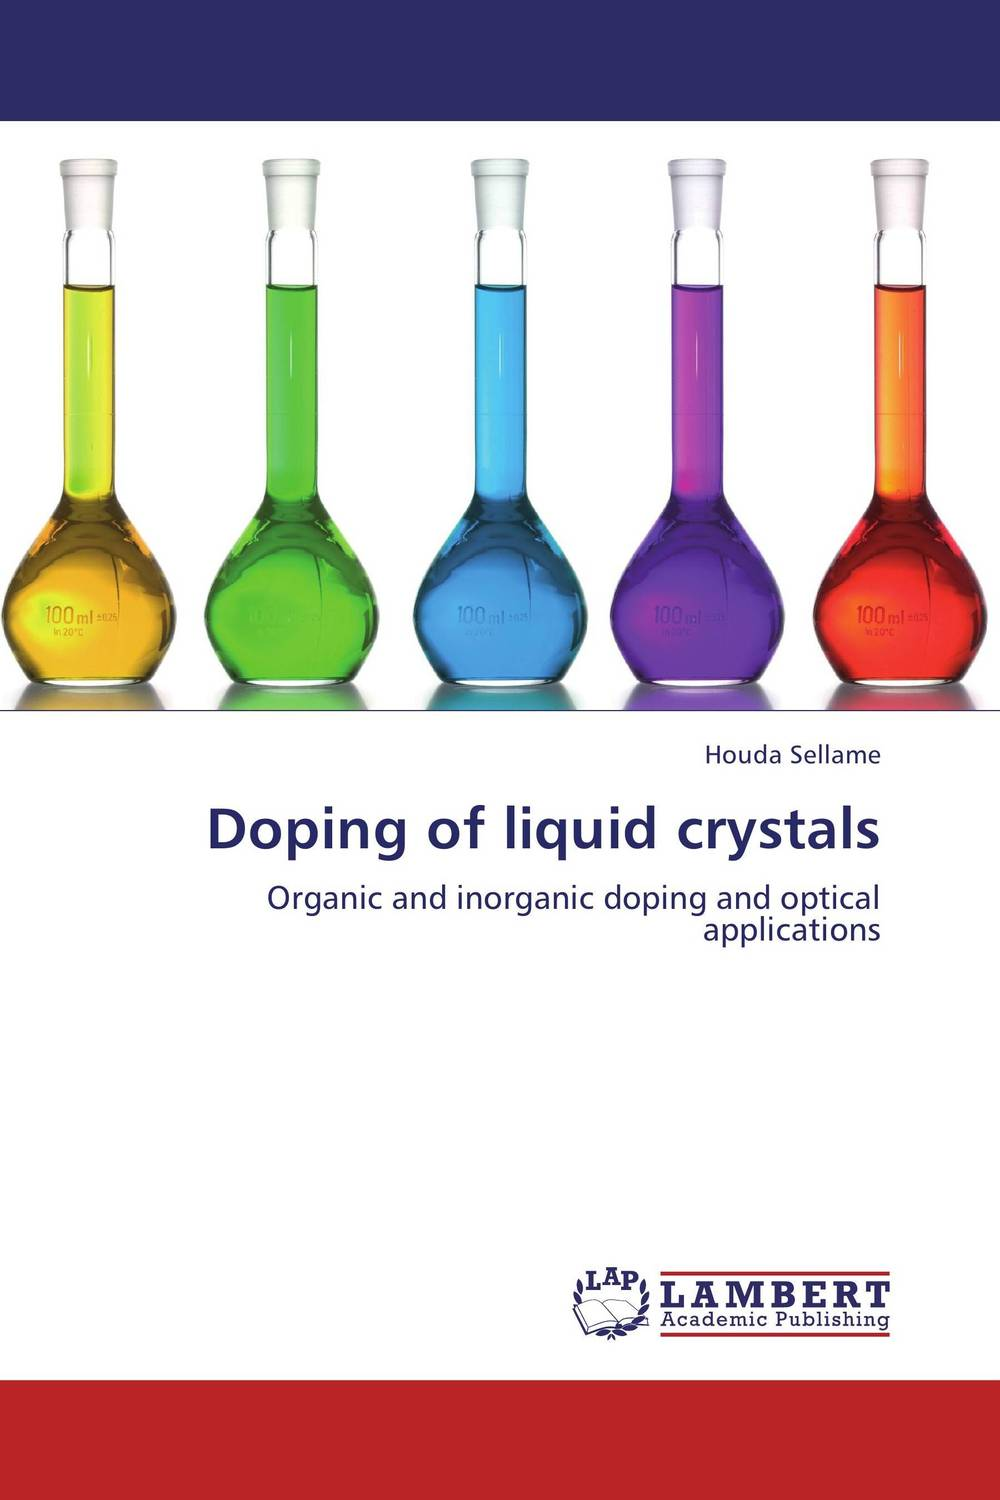 Doping of liquid crystals green plastic gold pan with two types of riffles set of 3 gold pan and one sifter